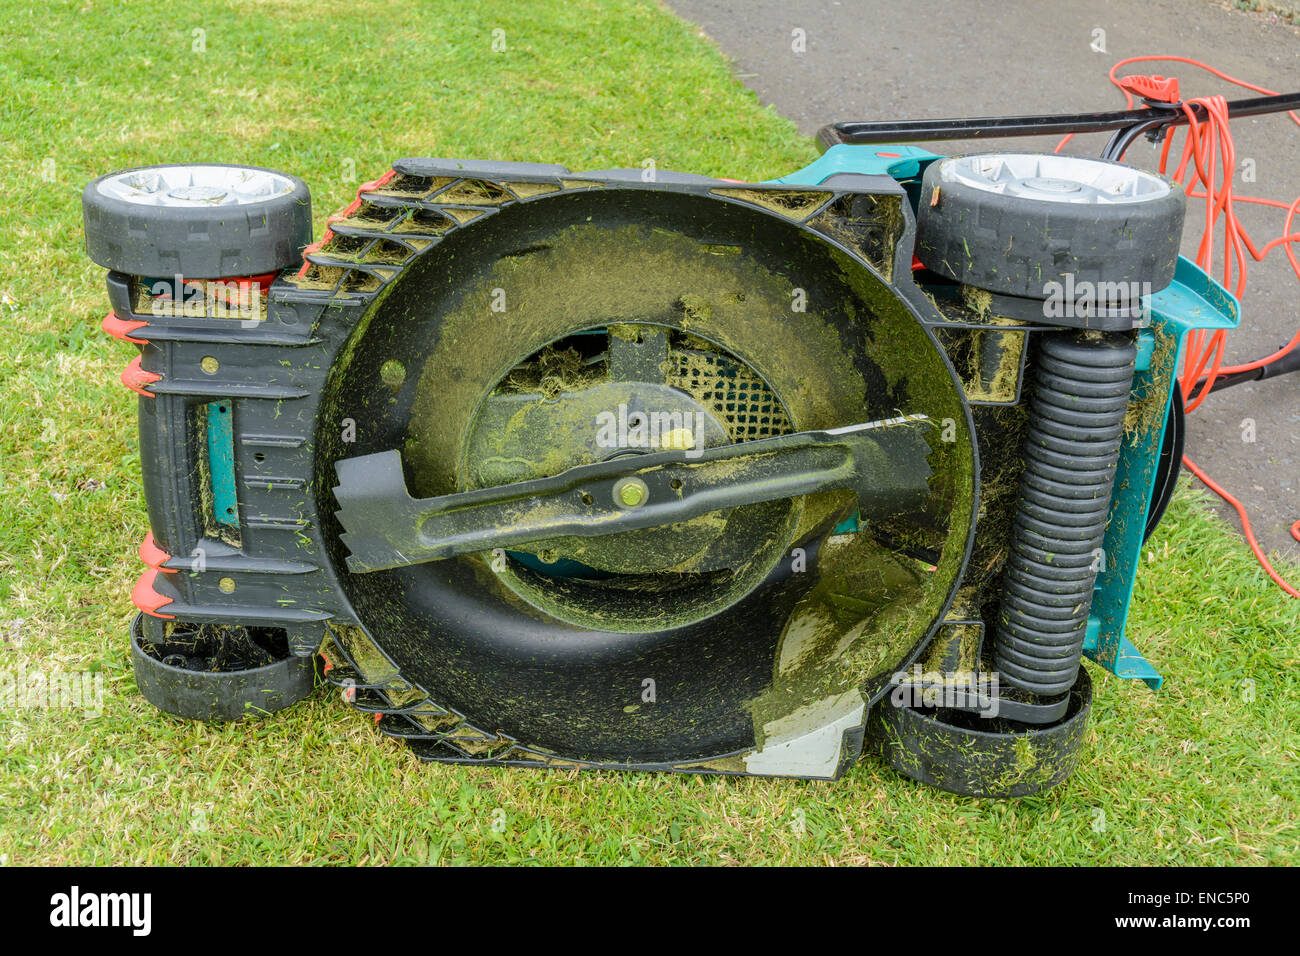 Underside of an electric lawnmower showing the rotary cutter. - Stock Image